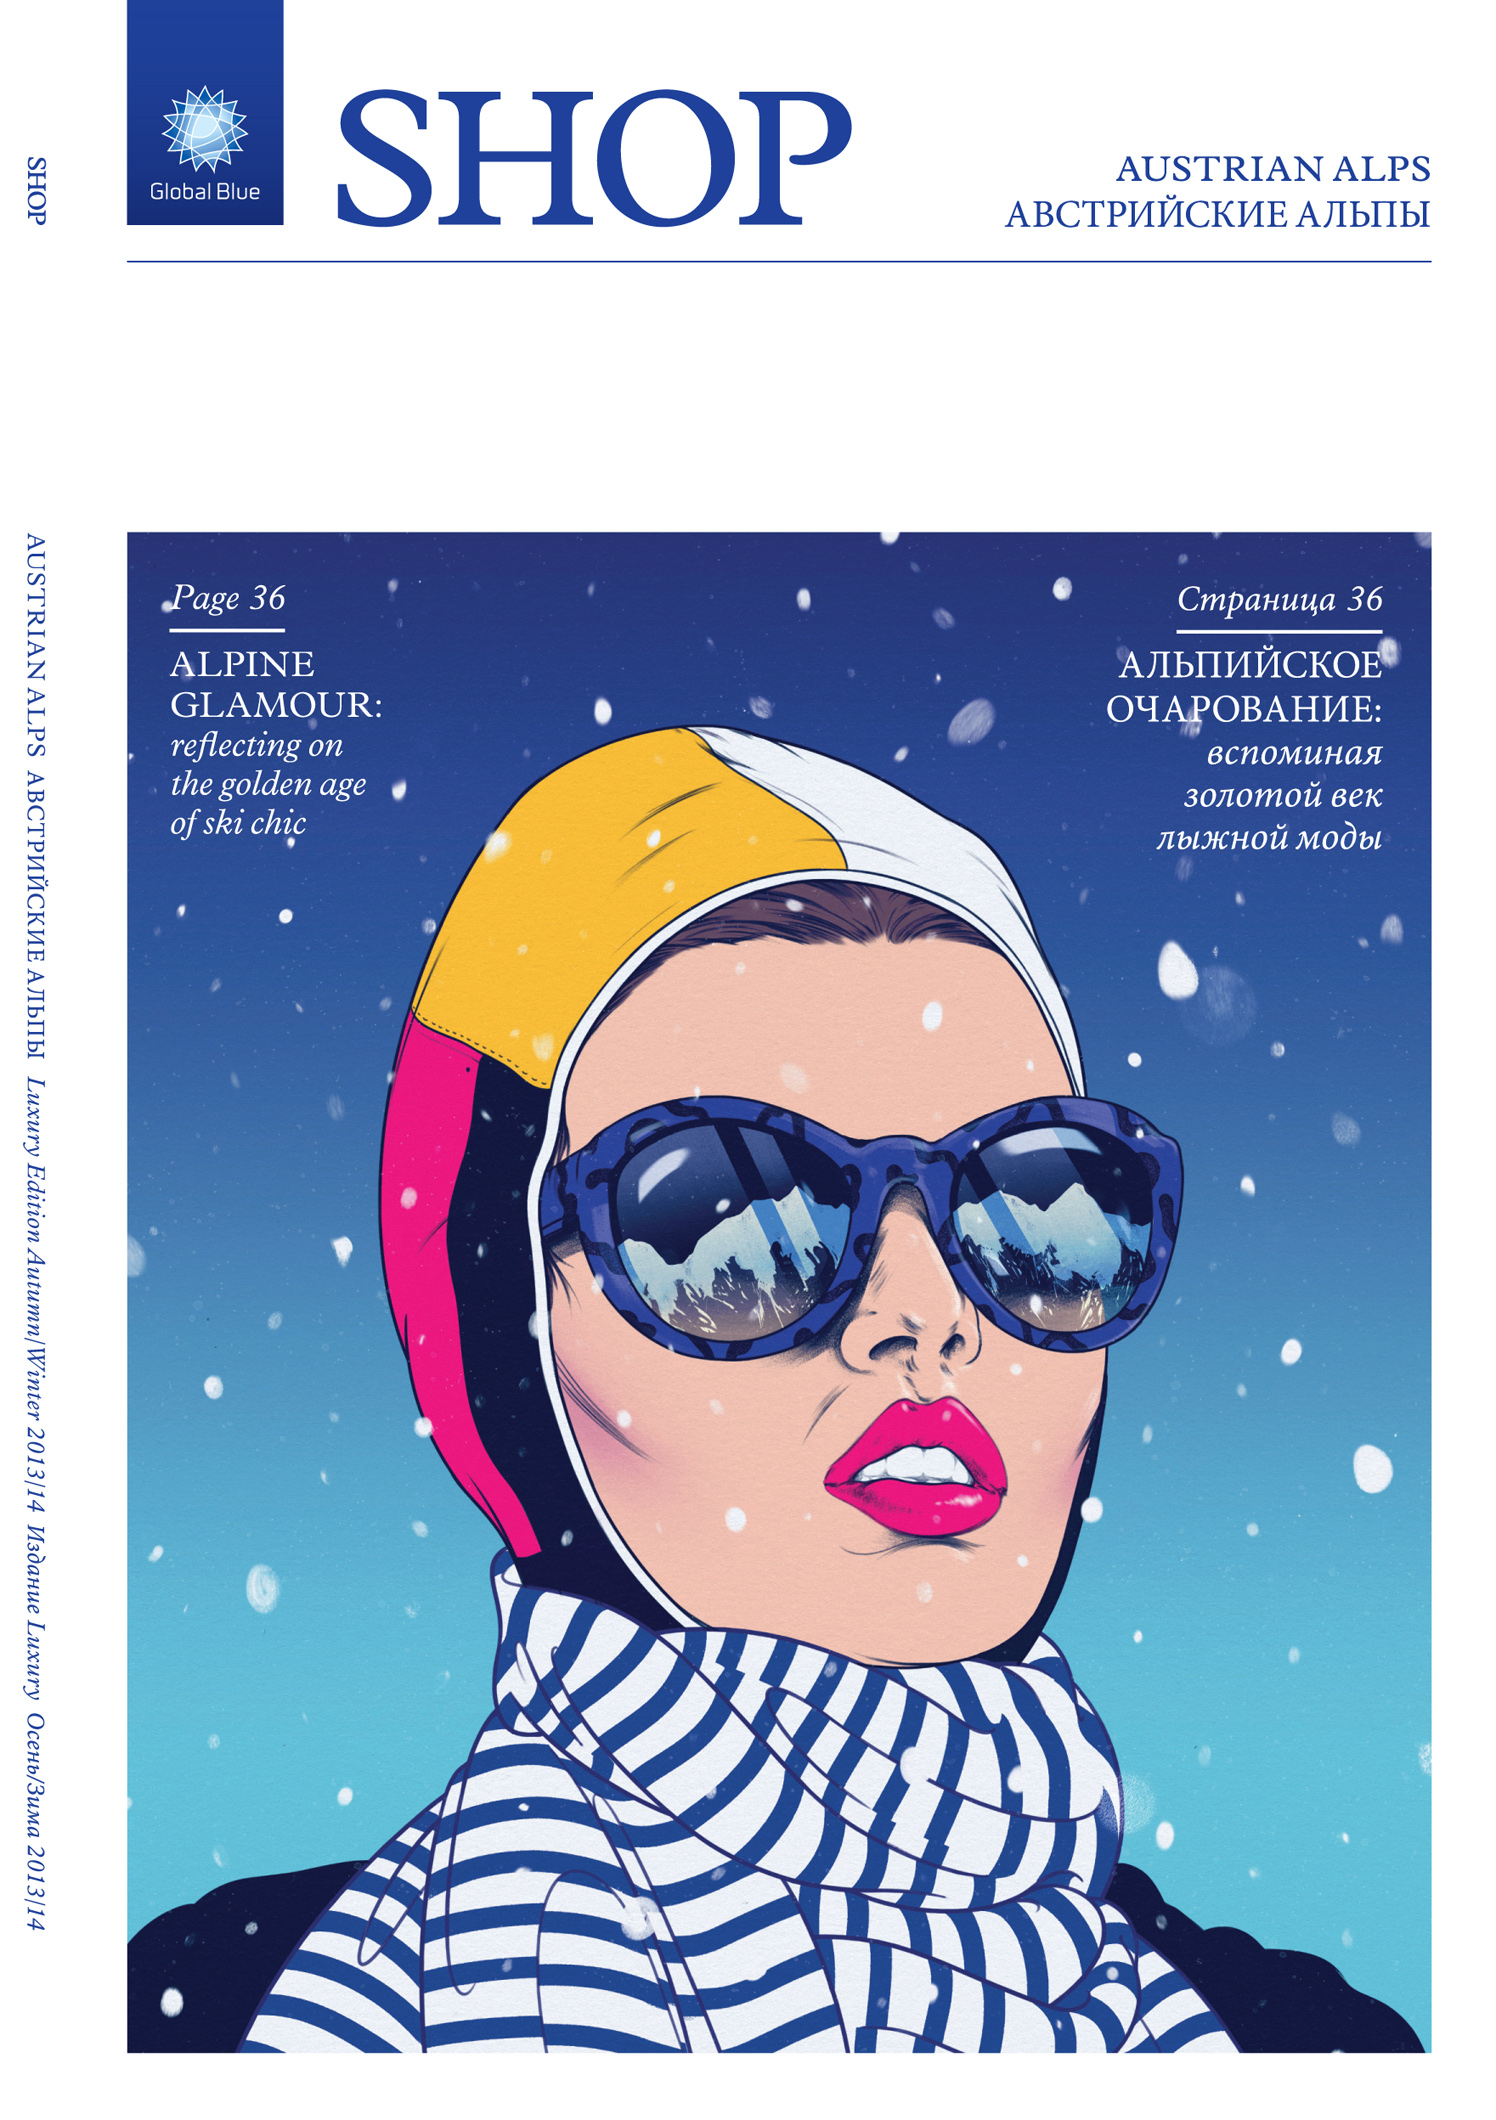 Austrian Alps / SHOP Magazine